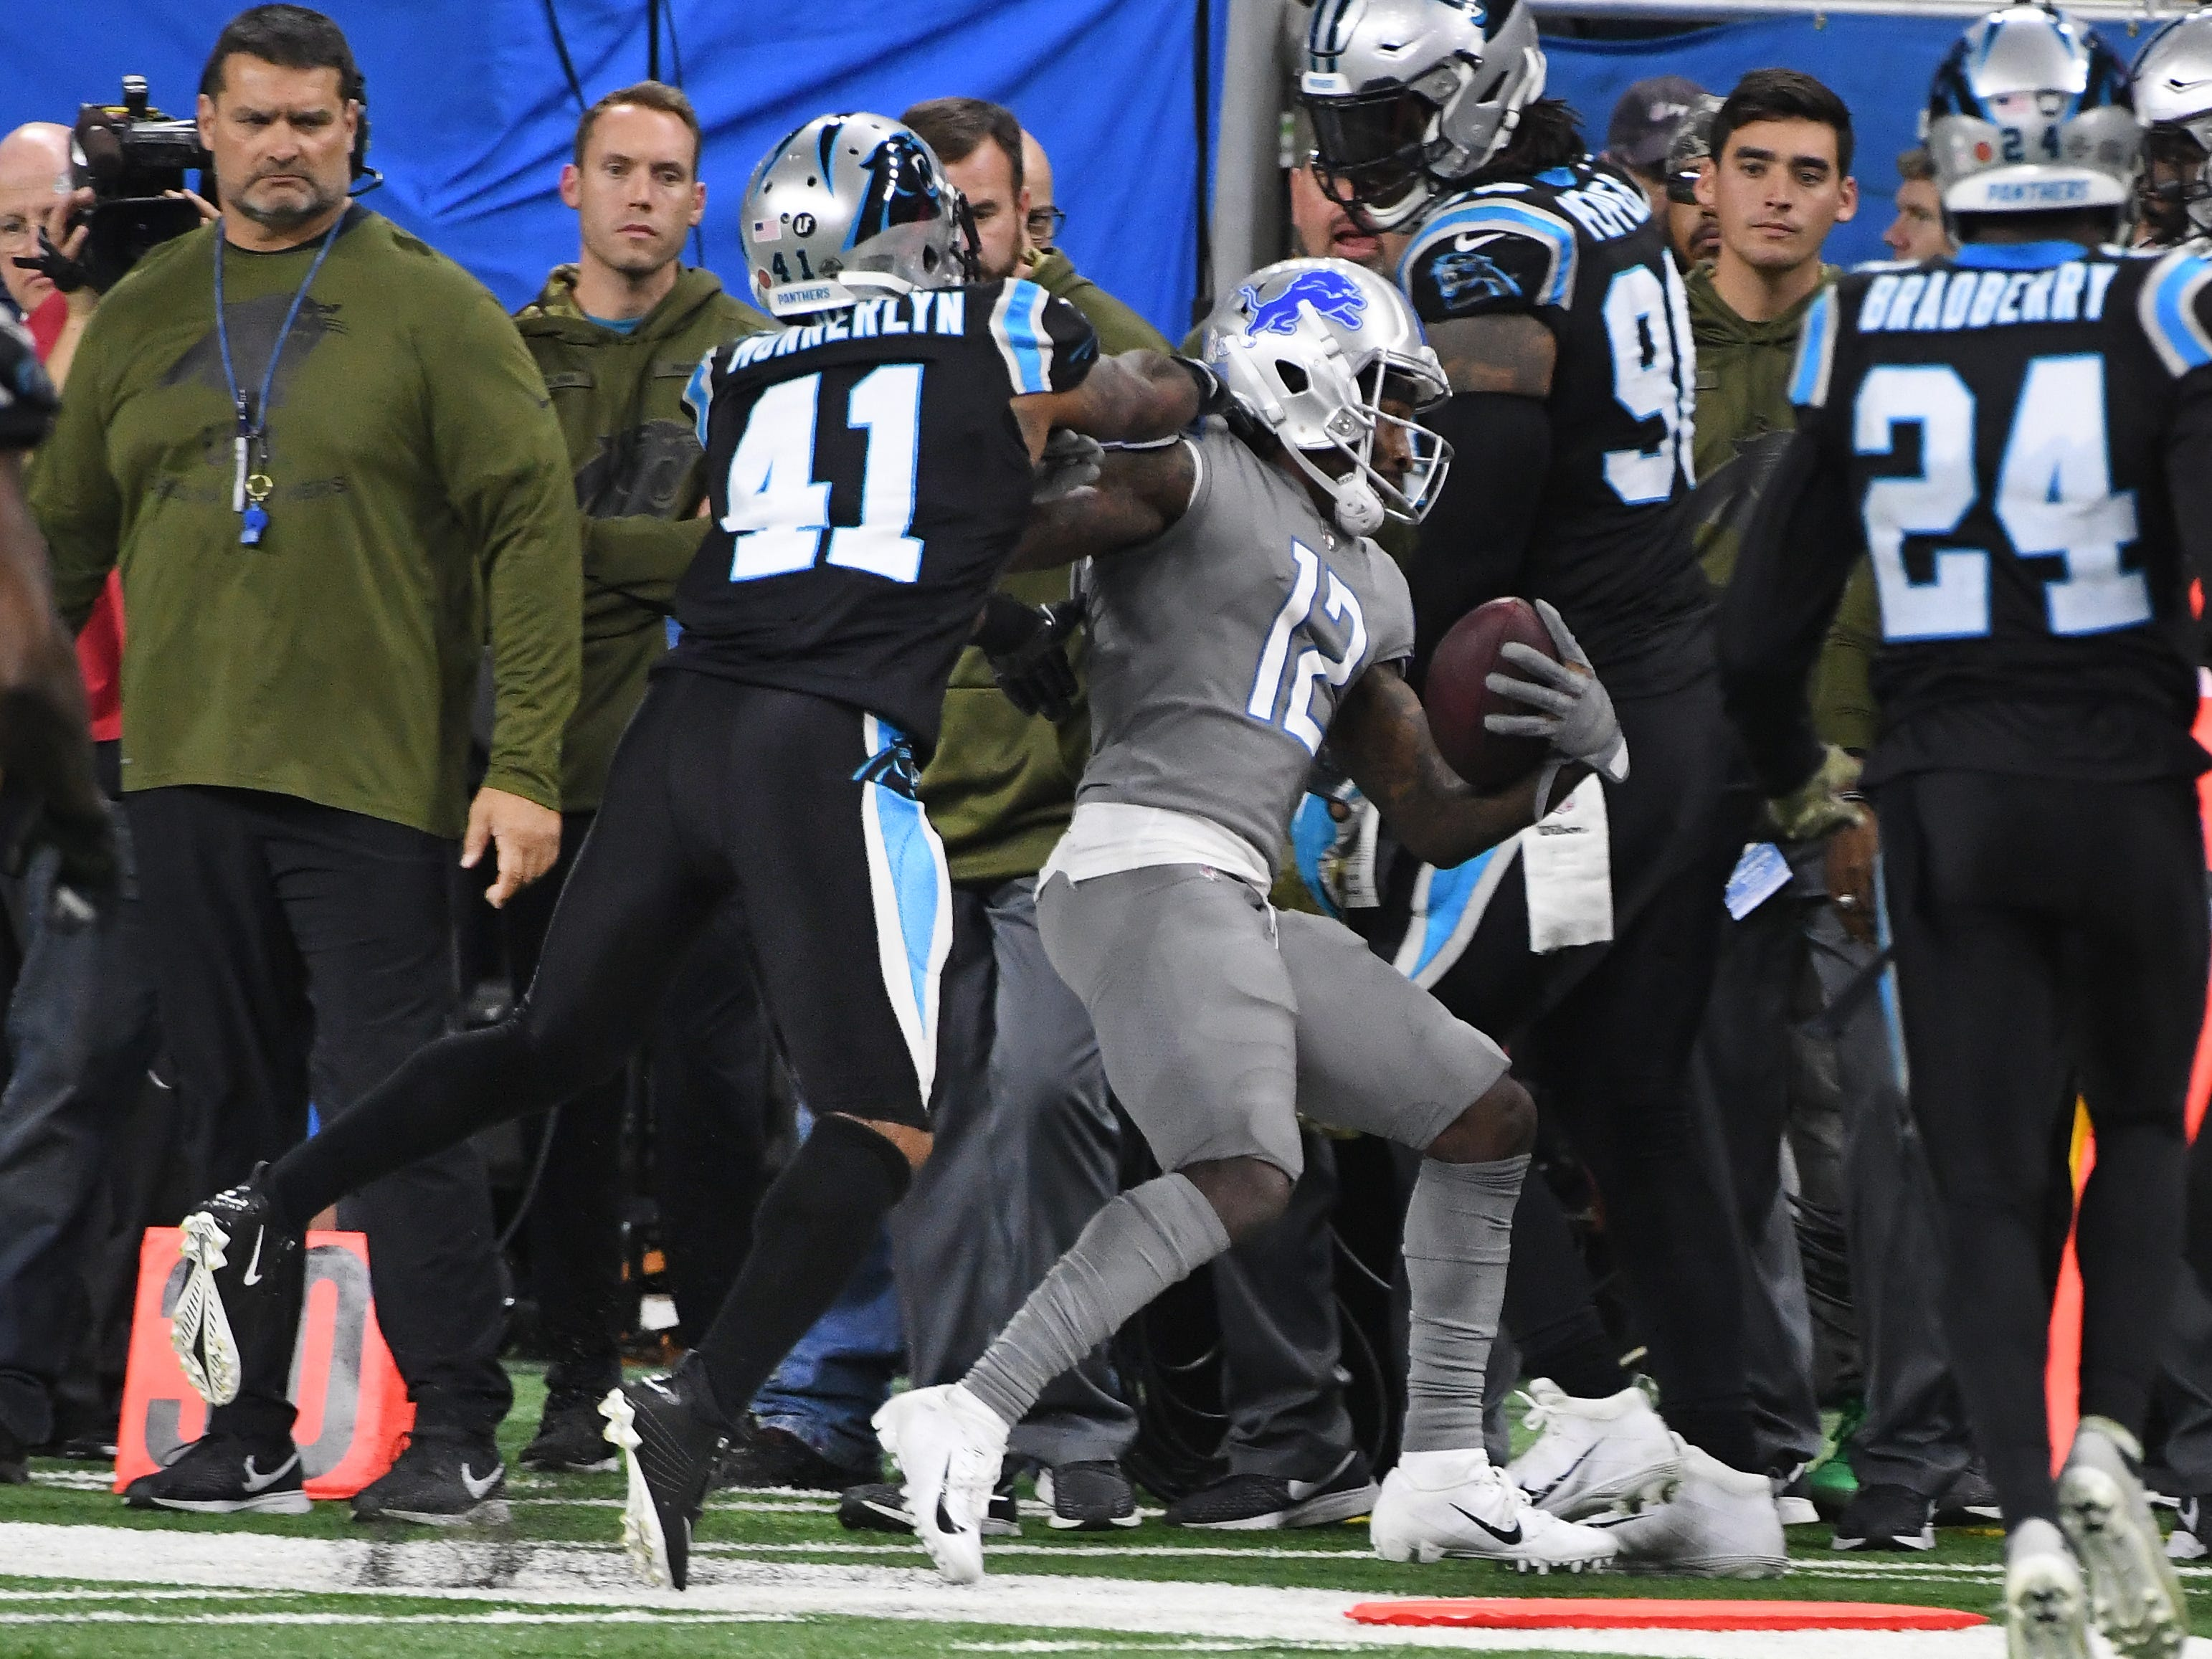 Panthers' Captain Munnerlyn pushes Lions wide receiver Bruce Ellington out of bounds and maybe beyond that but it was ruled a fair play in the fourth quarter.